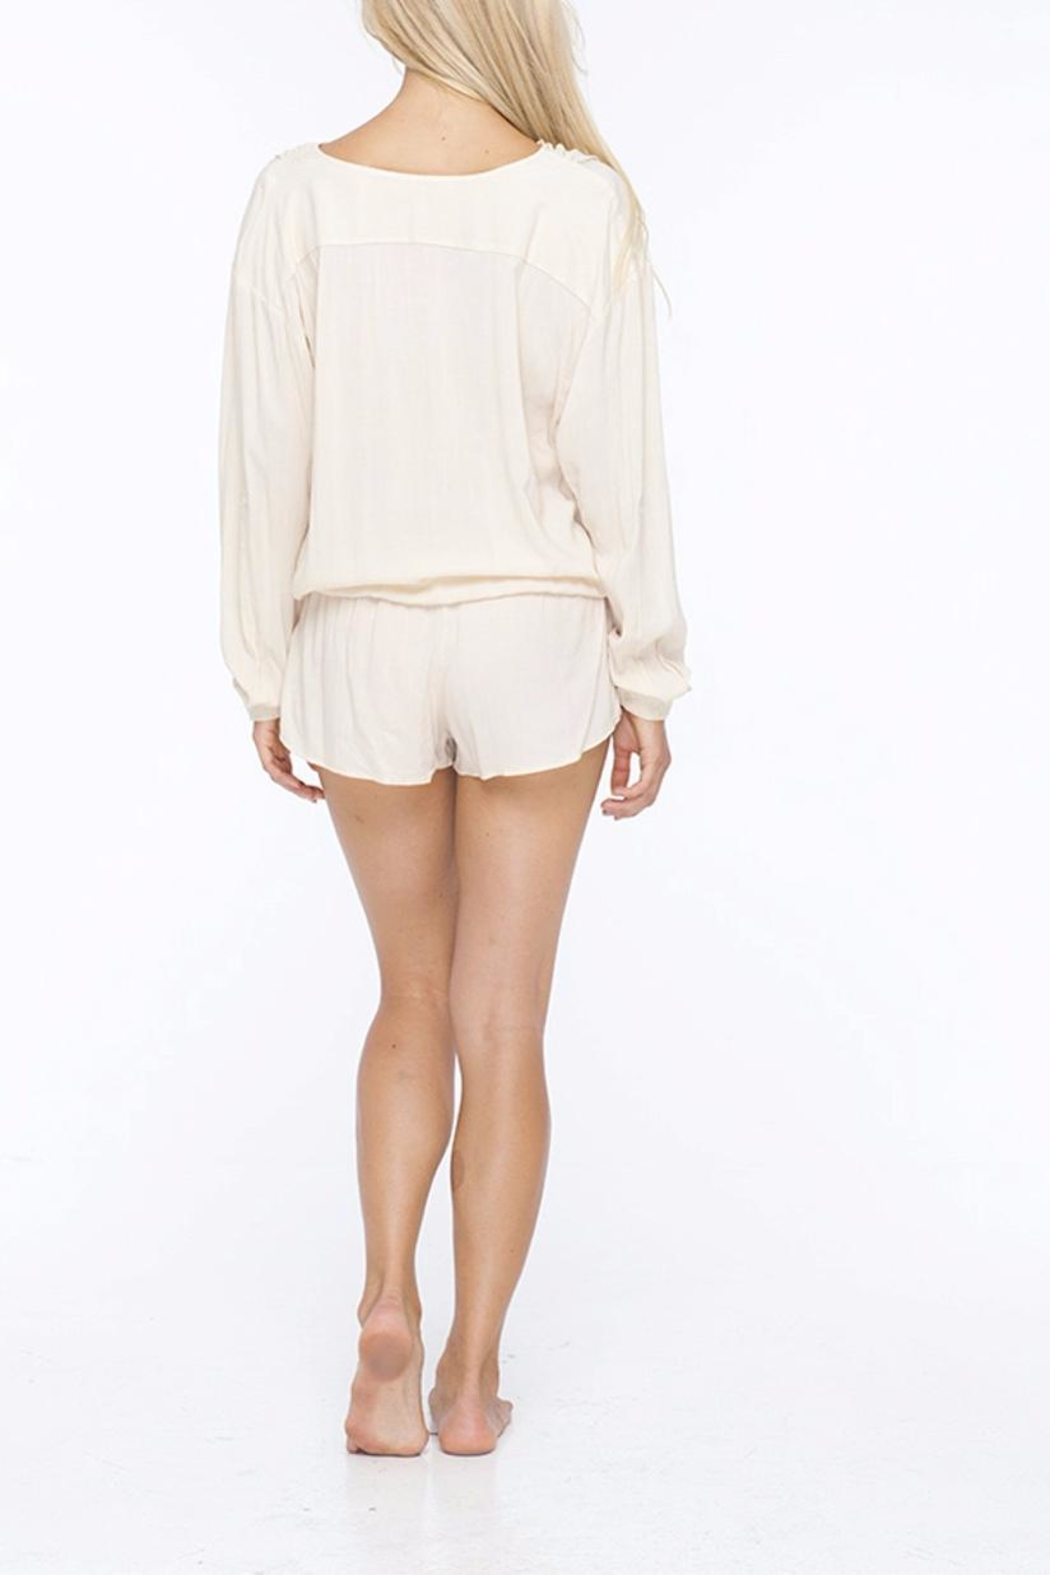 Indah Casual Everyday Romper - Back Cropped Image